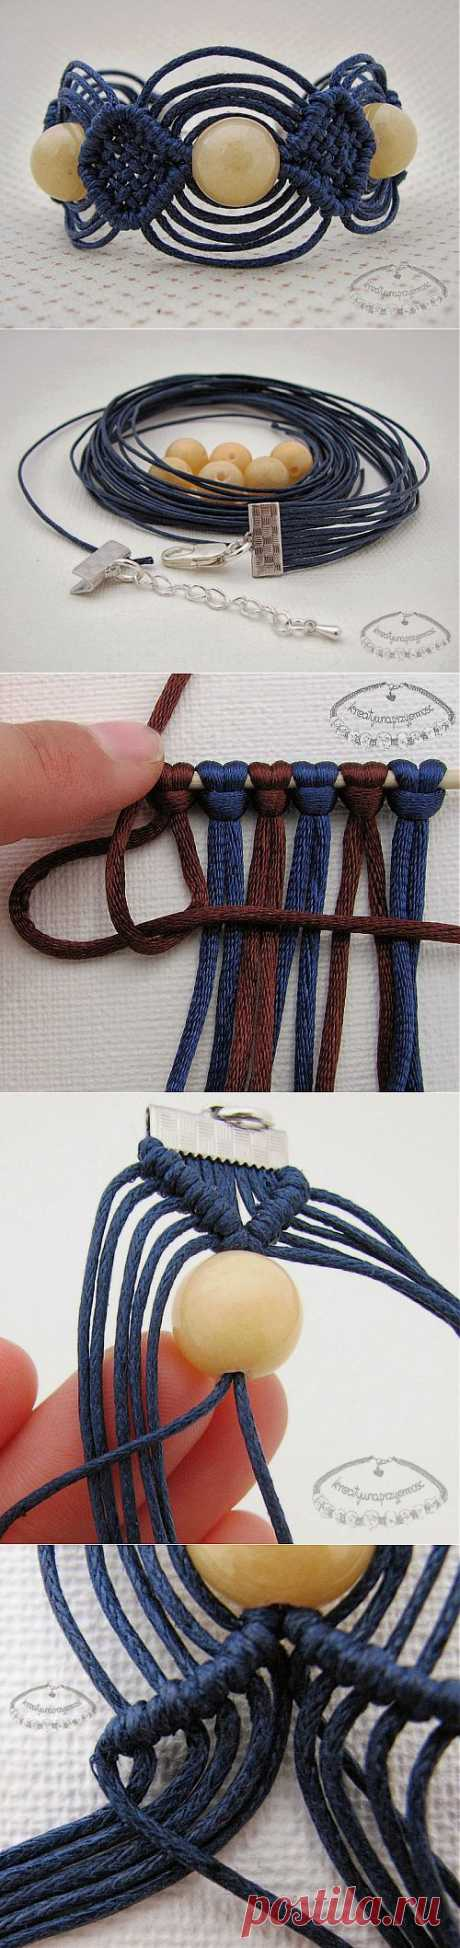 Bracelet in equipment of a macrame from a lace and beads. Master class.